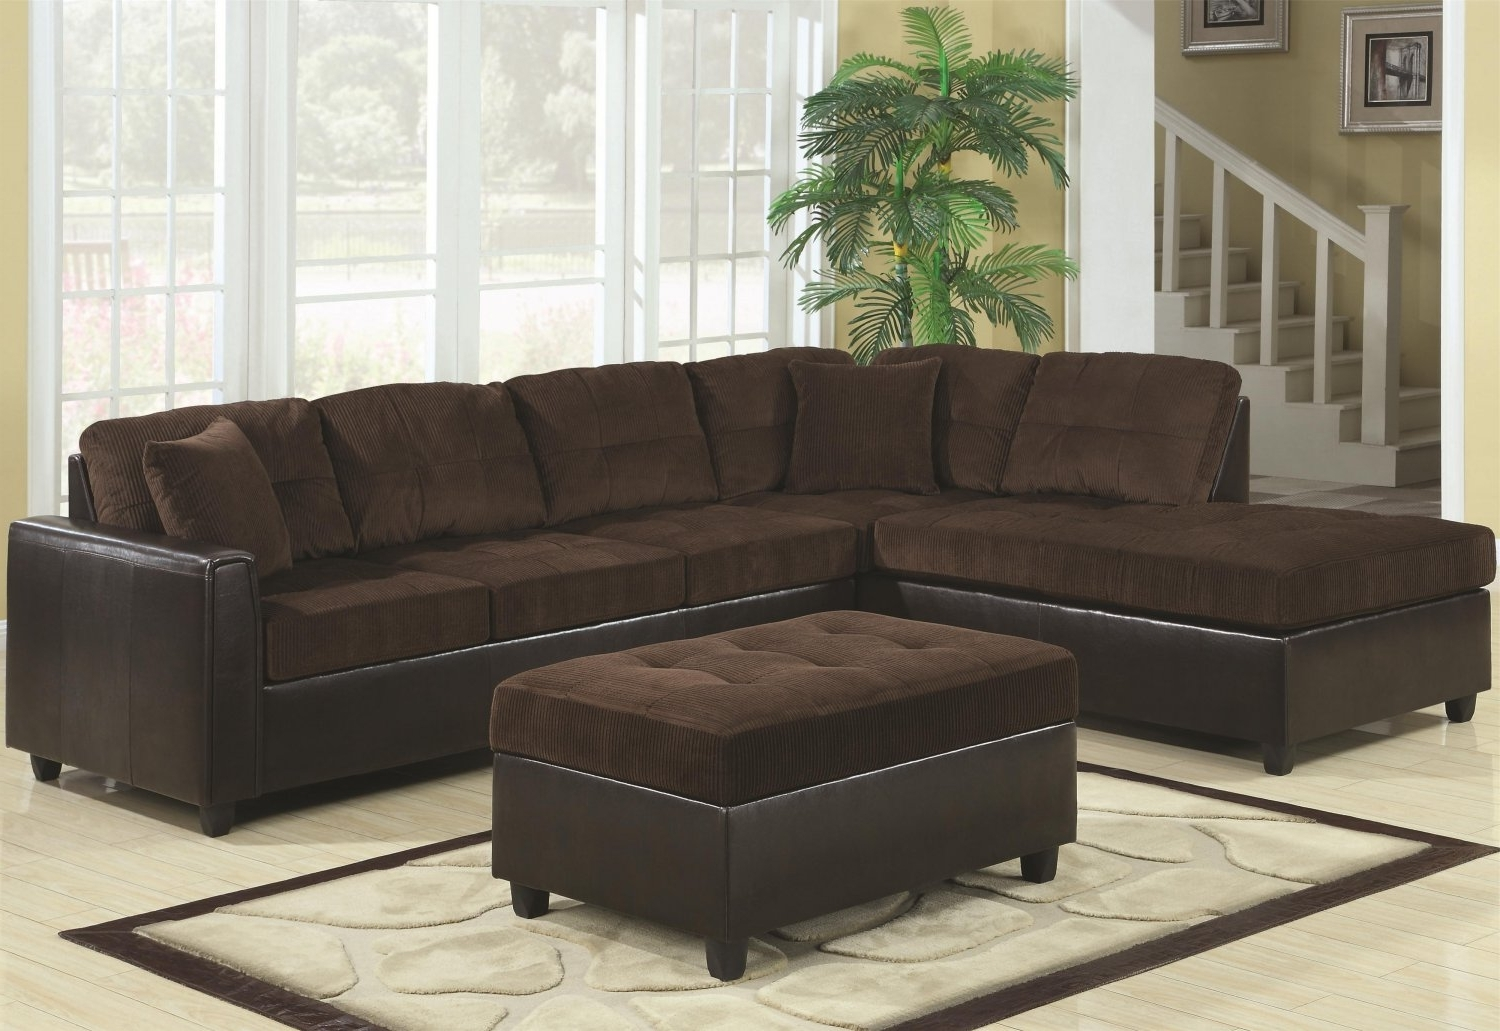 Brown L Shaped Sectional Couch With Black Leather Base And Gray Throughout 2018 Leather L Shaped Sectional Sofas (View 14 of 20)